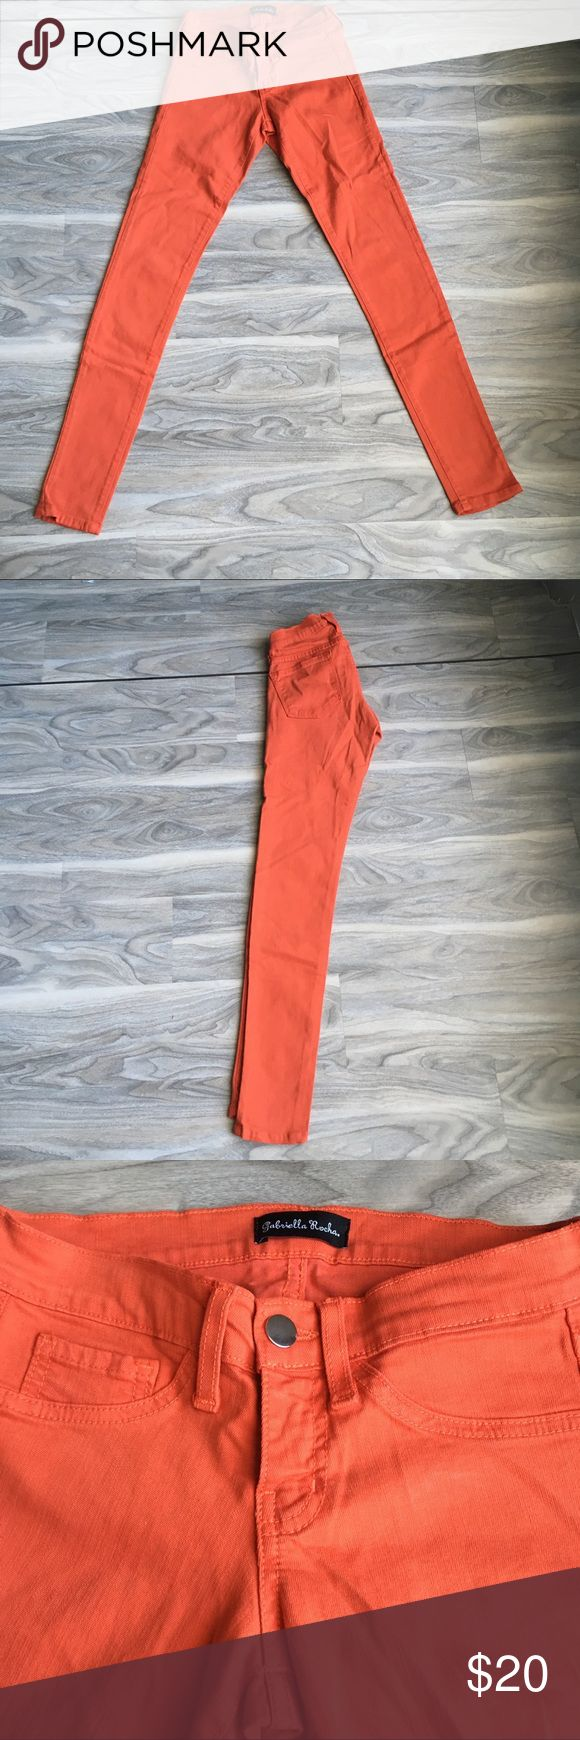 "Orange Skinny Jeans Super cute and bright orange skinny pants size 0. Slightly stretchy. Great for summer. In great condition. Unsure of brand. Made in USA. Waist 25"" inseam 29"" Pants Skinny"